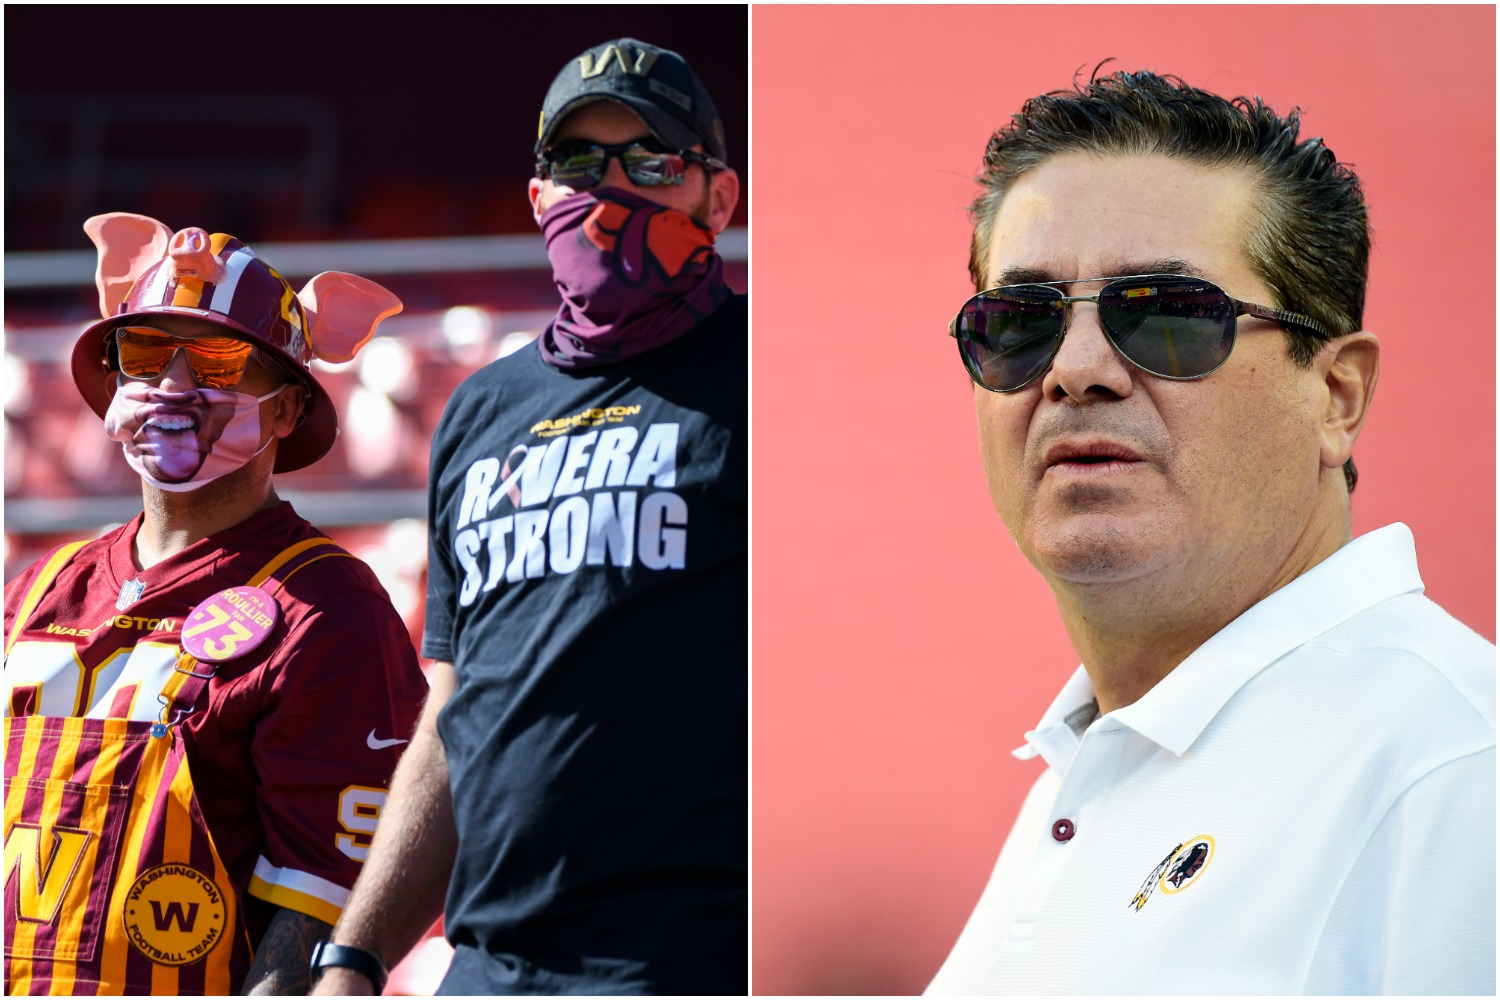 Washington Football Team fans may be preparing for a potential playoff run, but they won't be happy with Dan Snyder's latest major change.